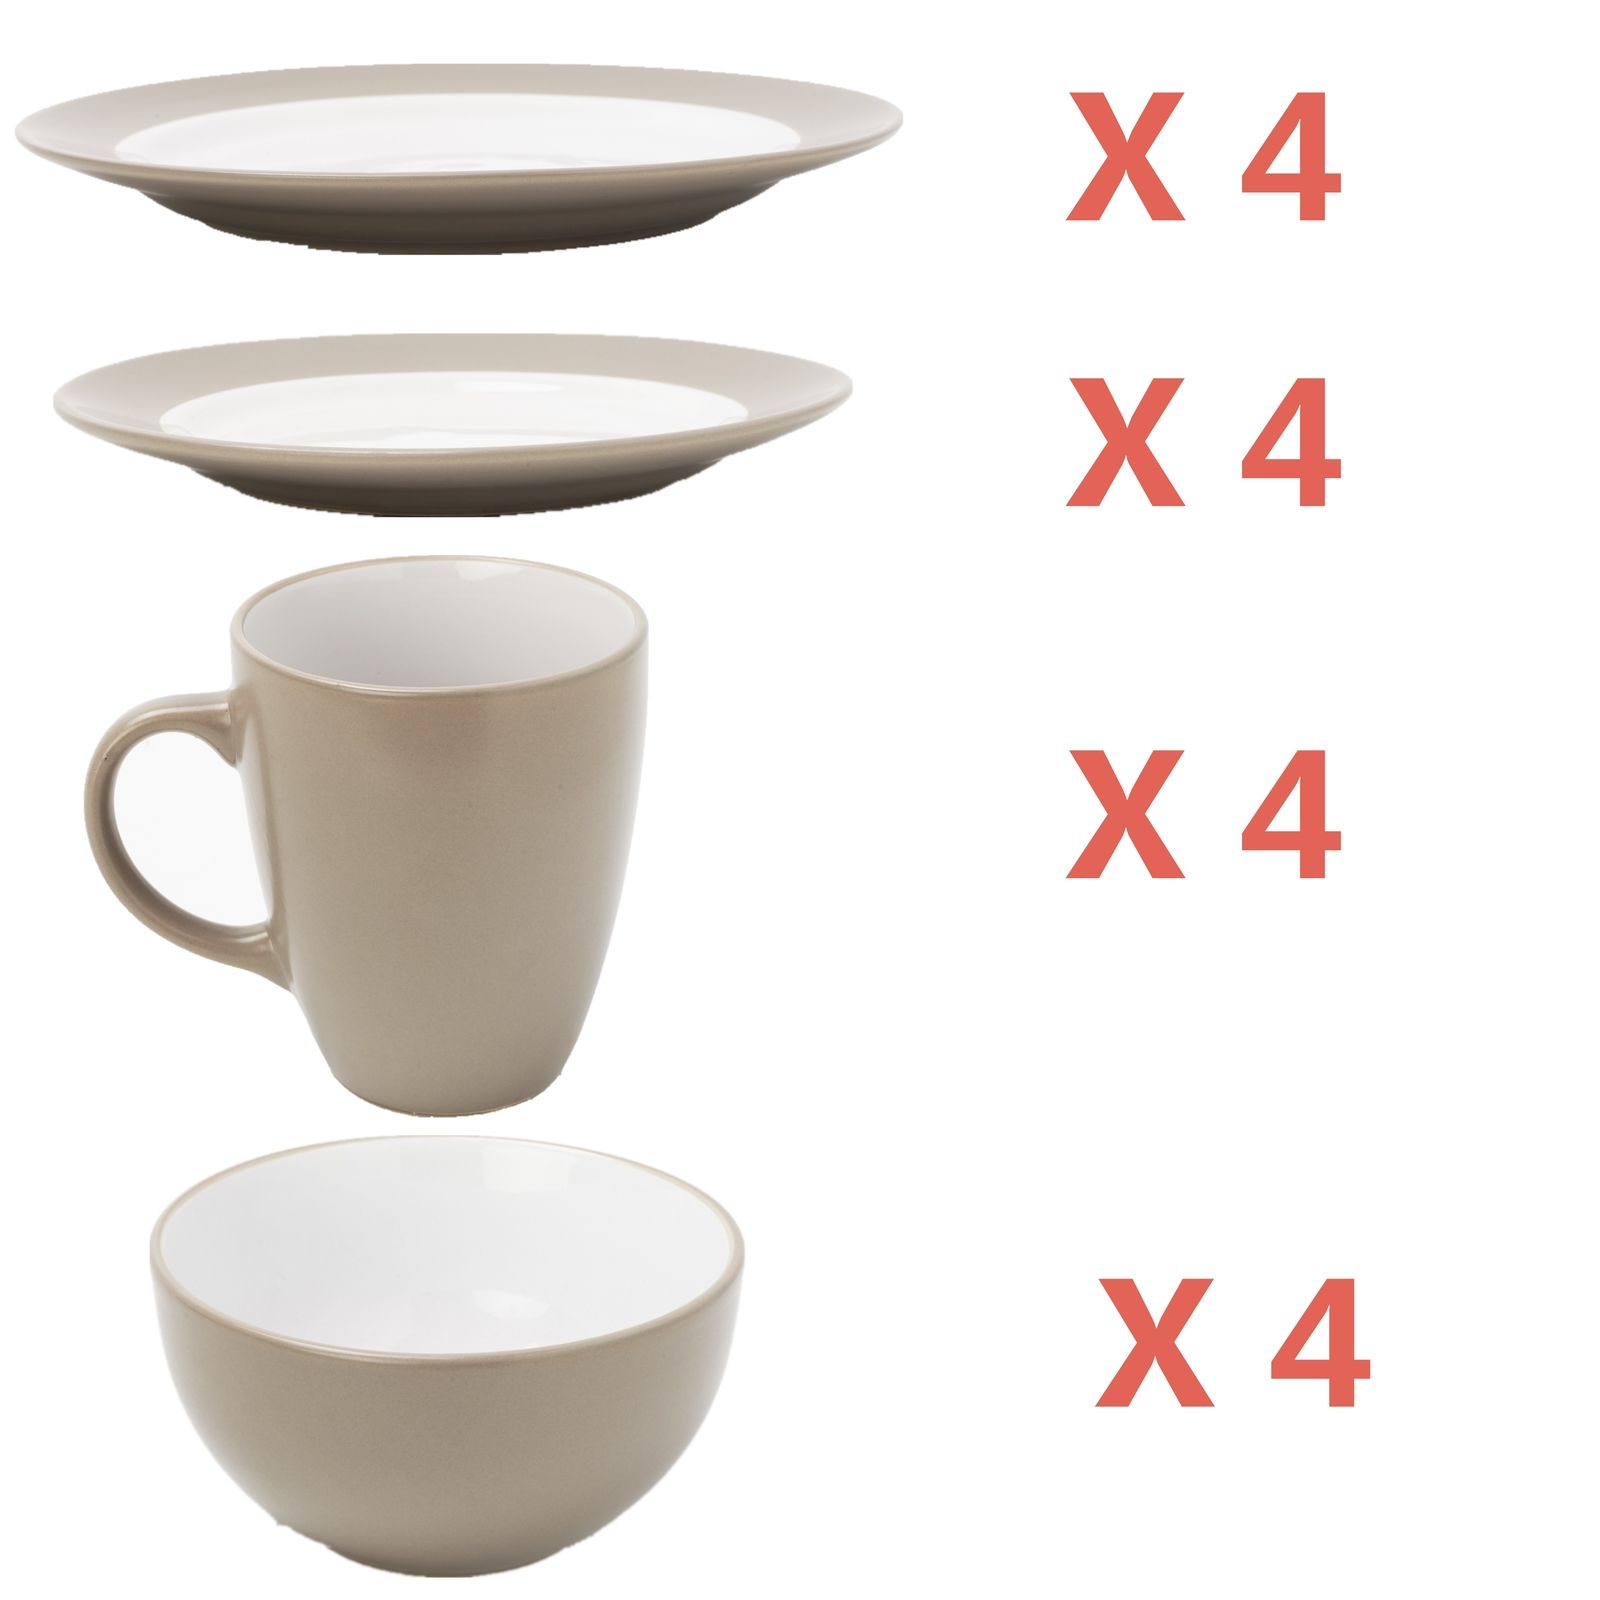 Zeny 16 Piece Round Dinnerware Set 4 Plates Dishes Bowls Cups for KitchenGray  sc 1 st  Walmart.com & Zeny 16 Piece Round Dinnerware Set 4 Plates Dishes Bowls Cups for ...